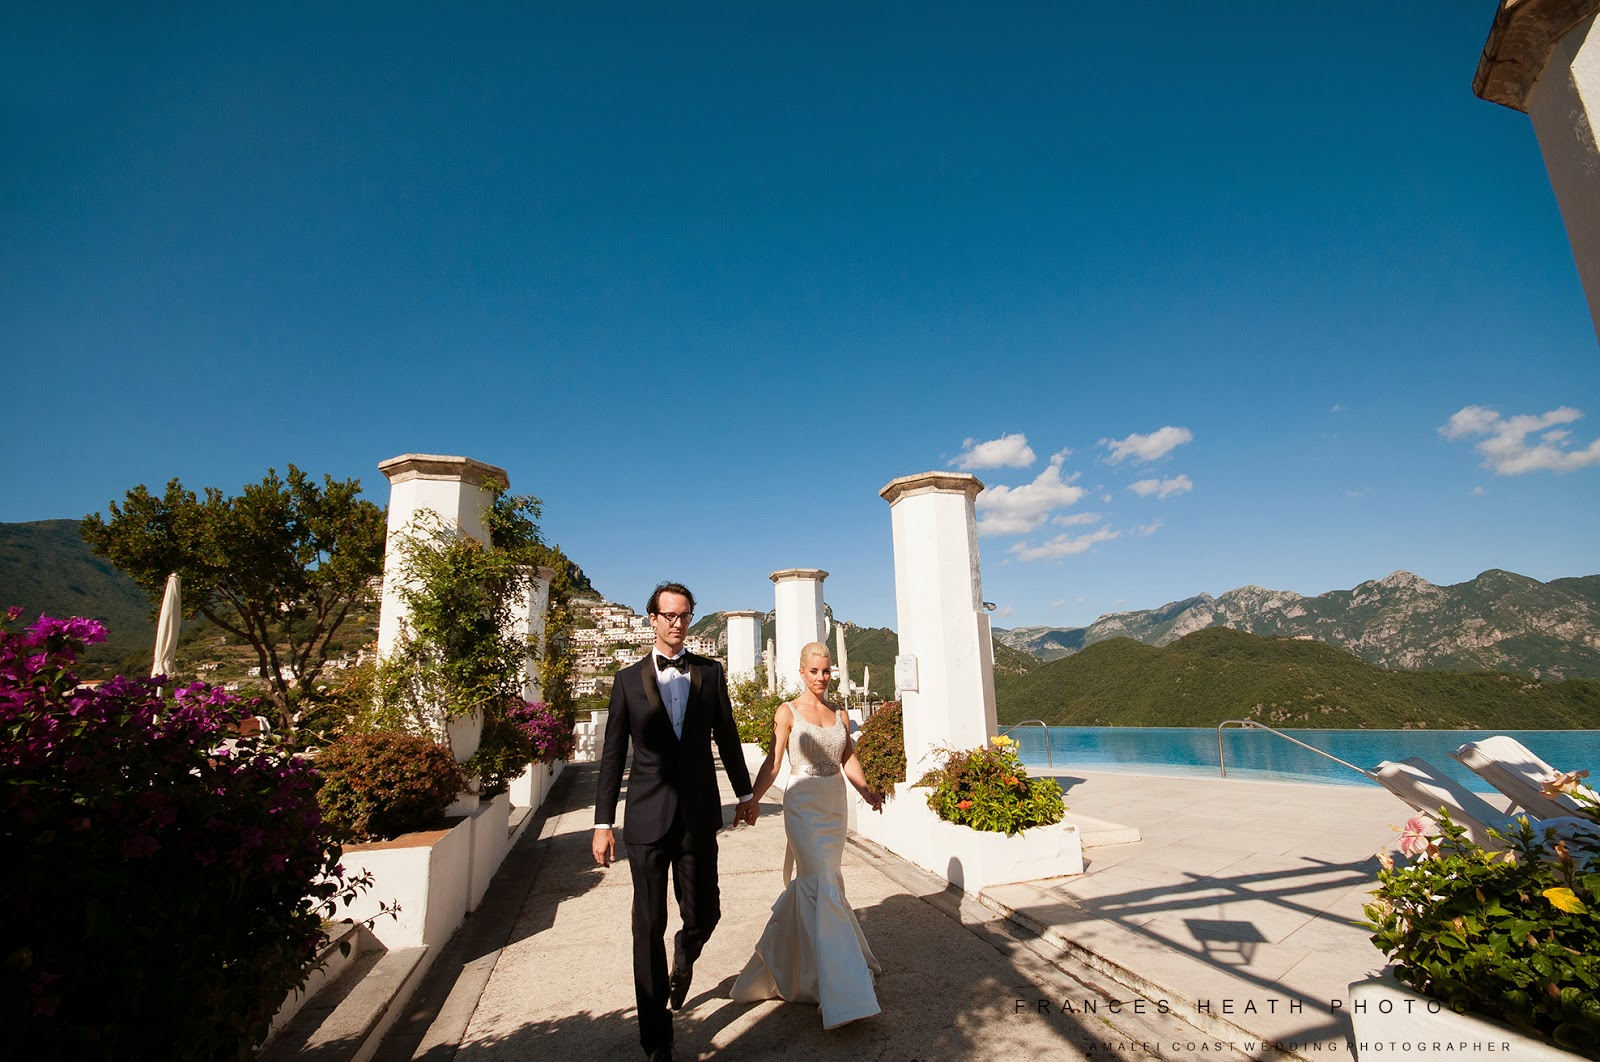 Wedding portraits at the Infinity pool in Hotel Caruso